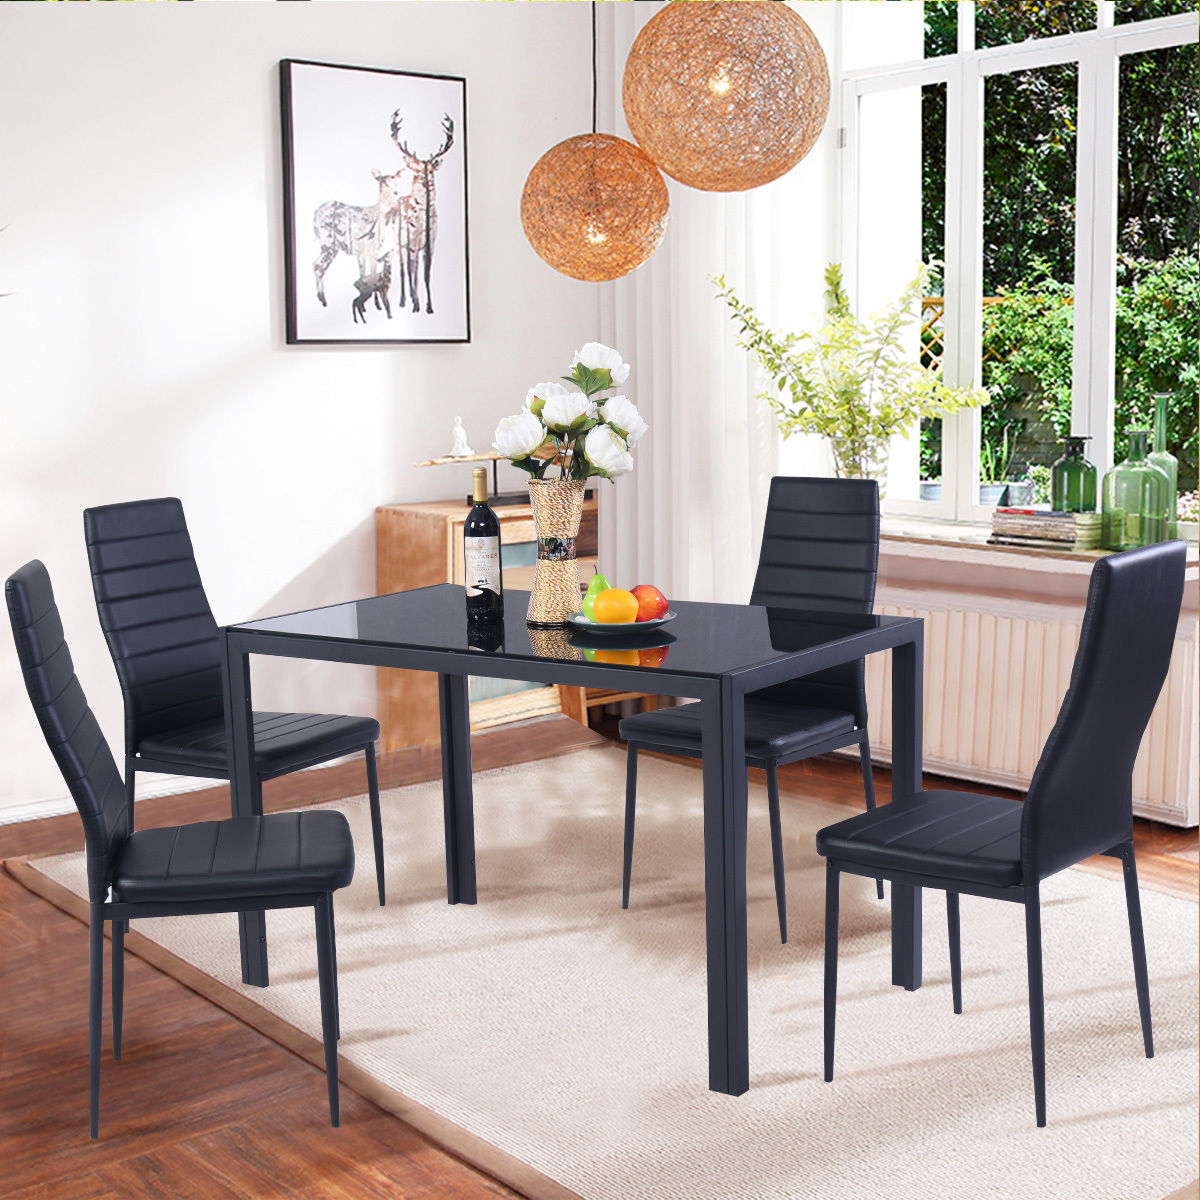 kitchen nook table backsplash panels breakfast tables costway 5 piece dining set glass metal and 4 chairs furniture